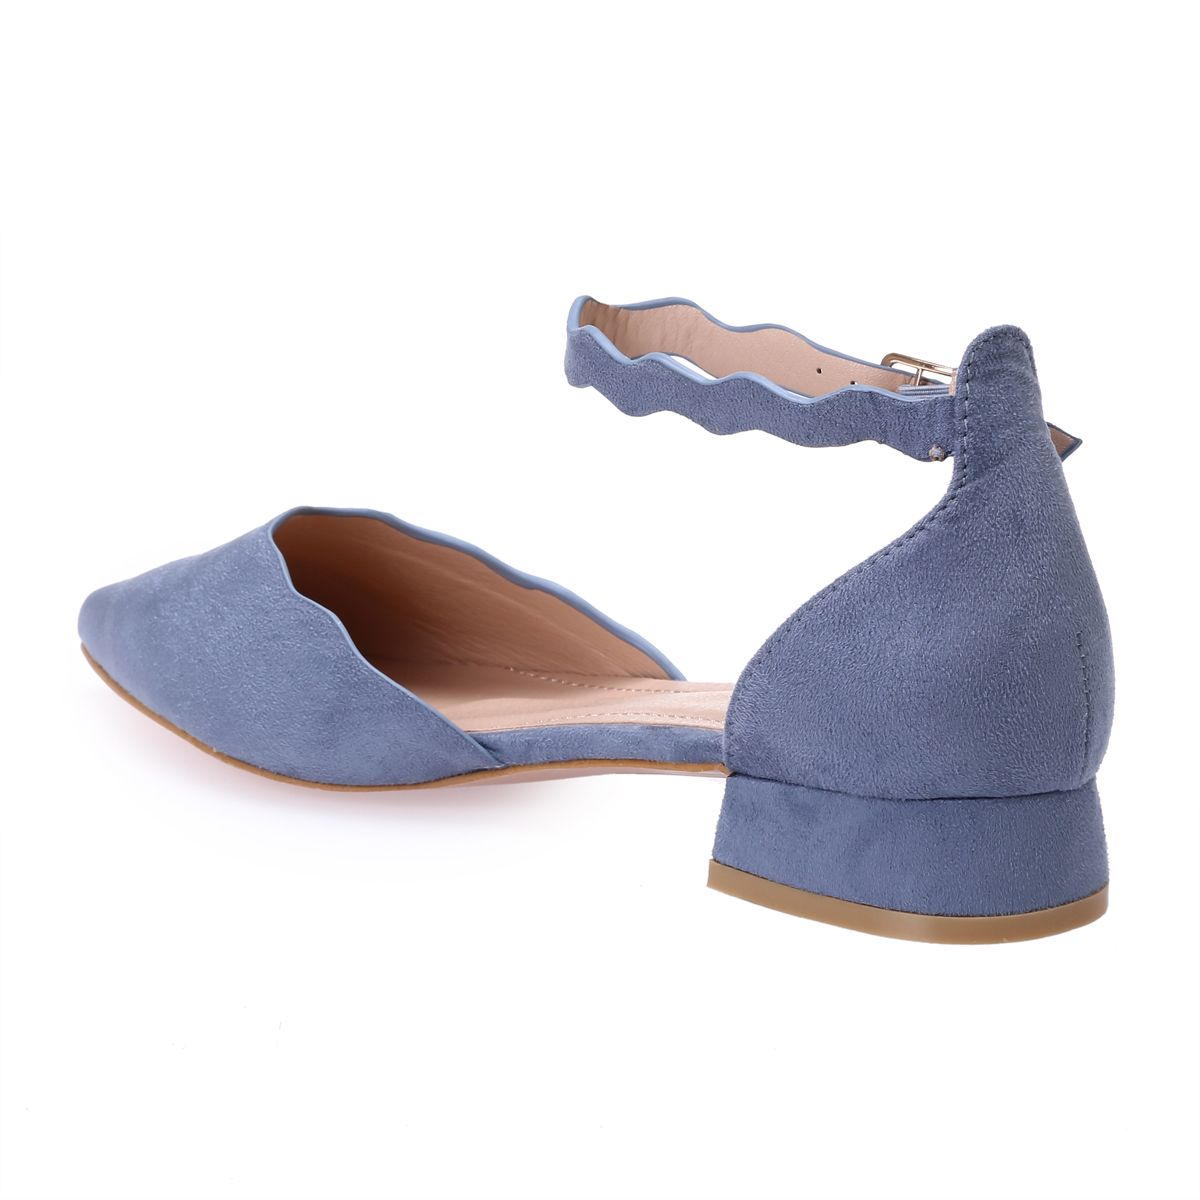 Ballerines pointues bleues à finitions vagues